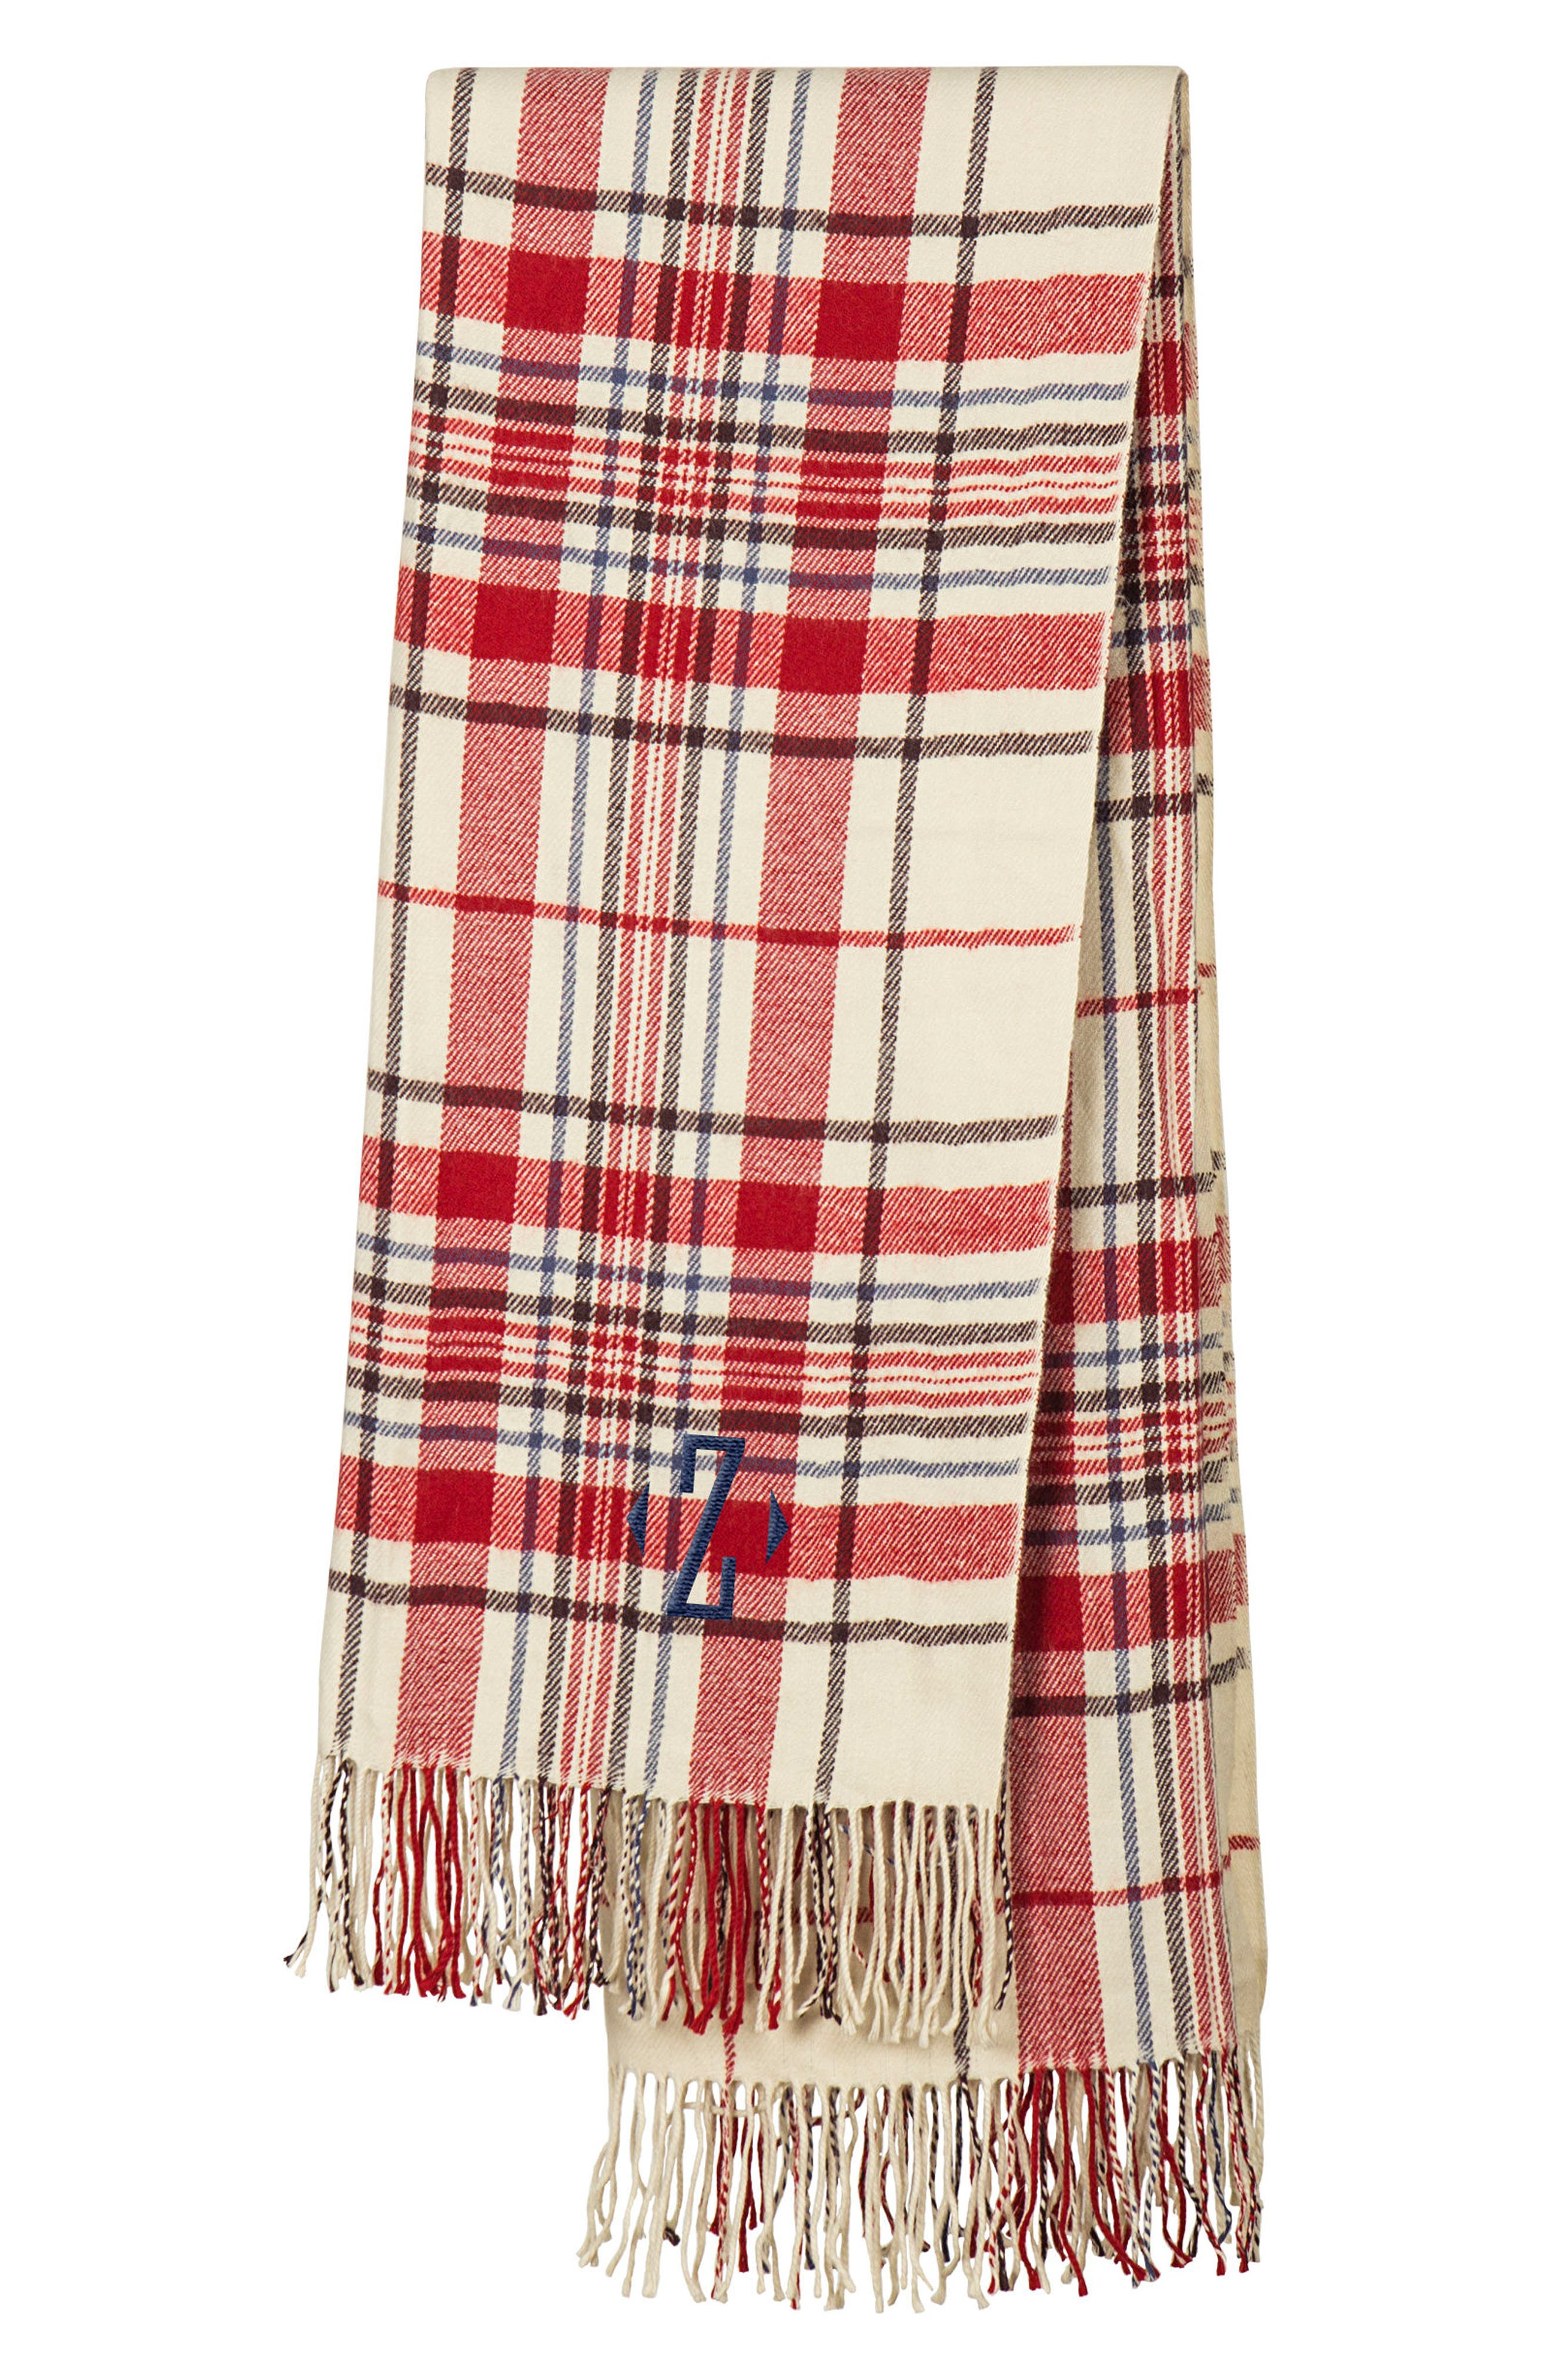 Cathy's Concepts Monogram Plaid Throw